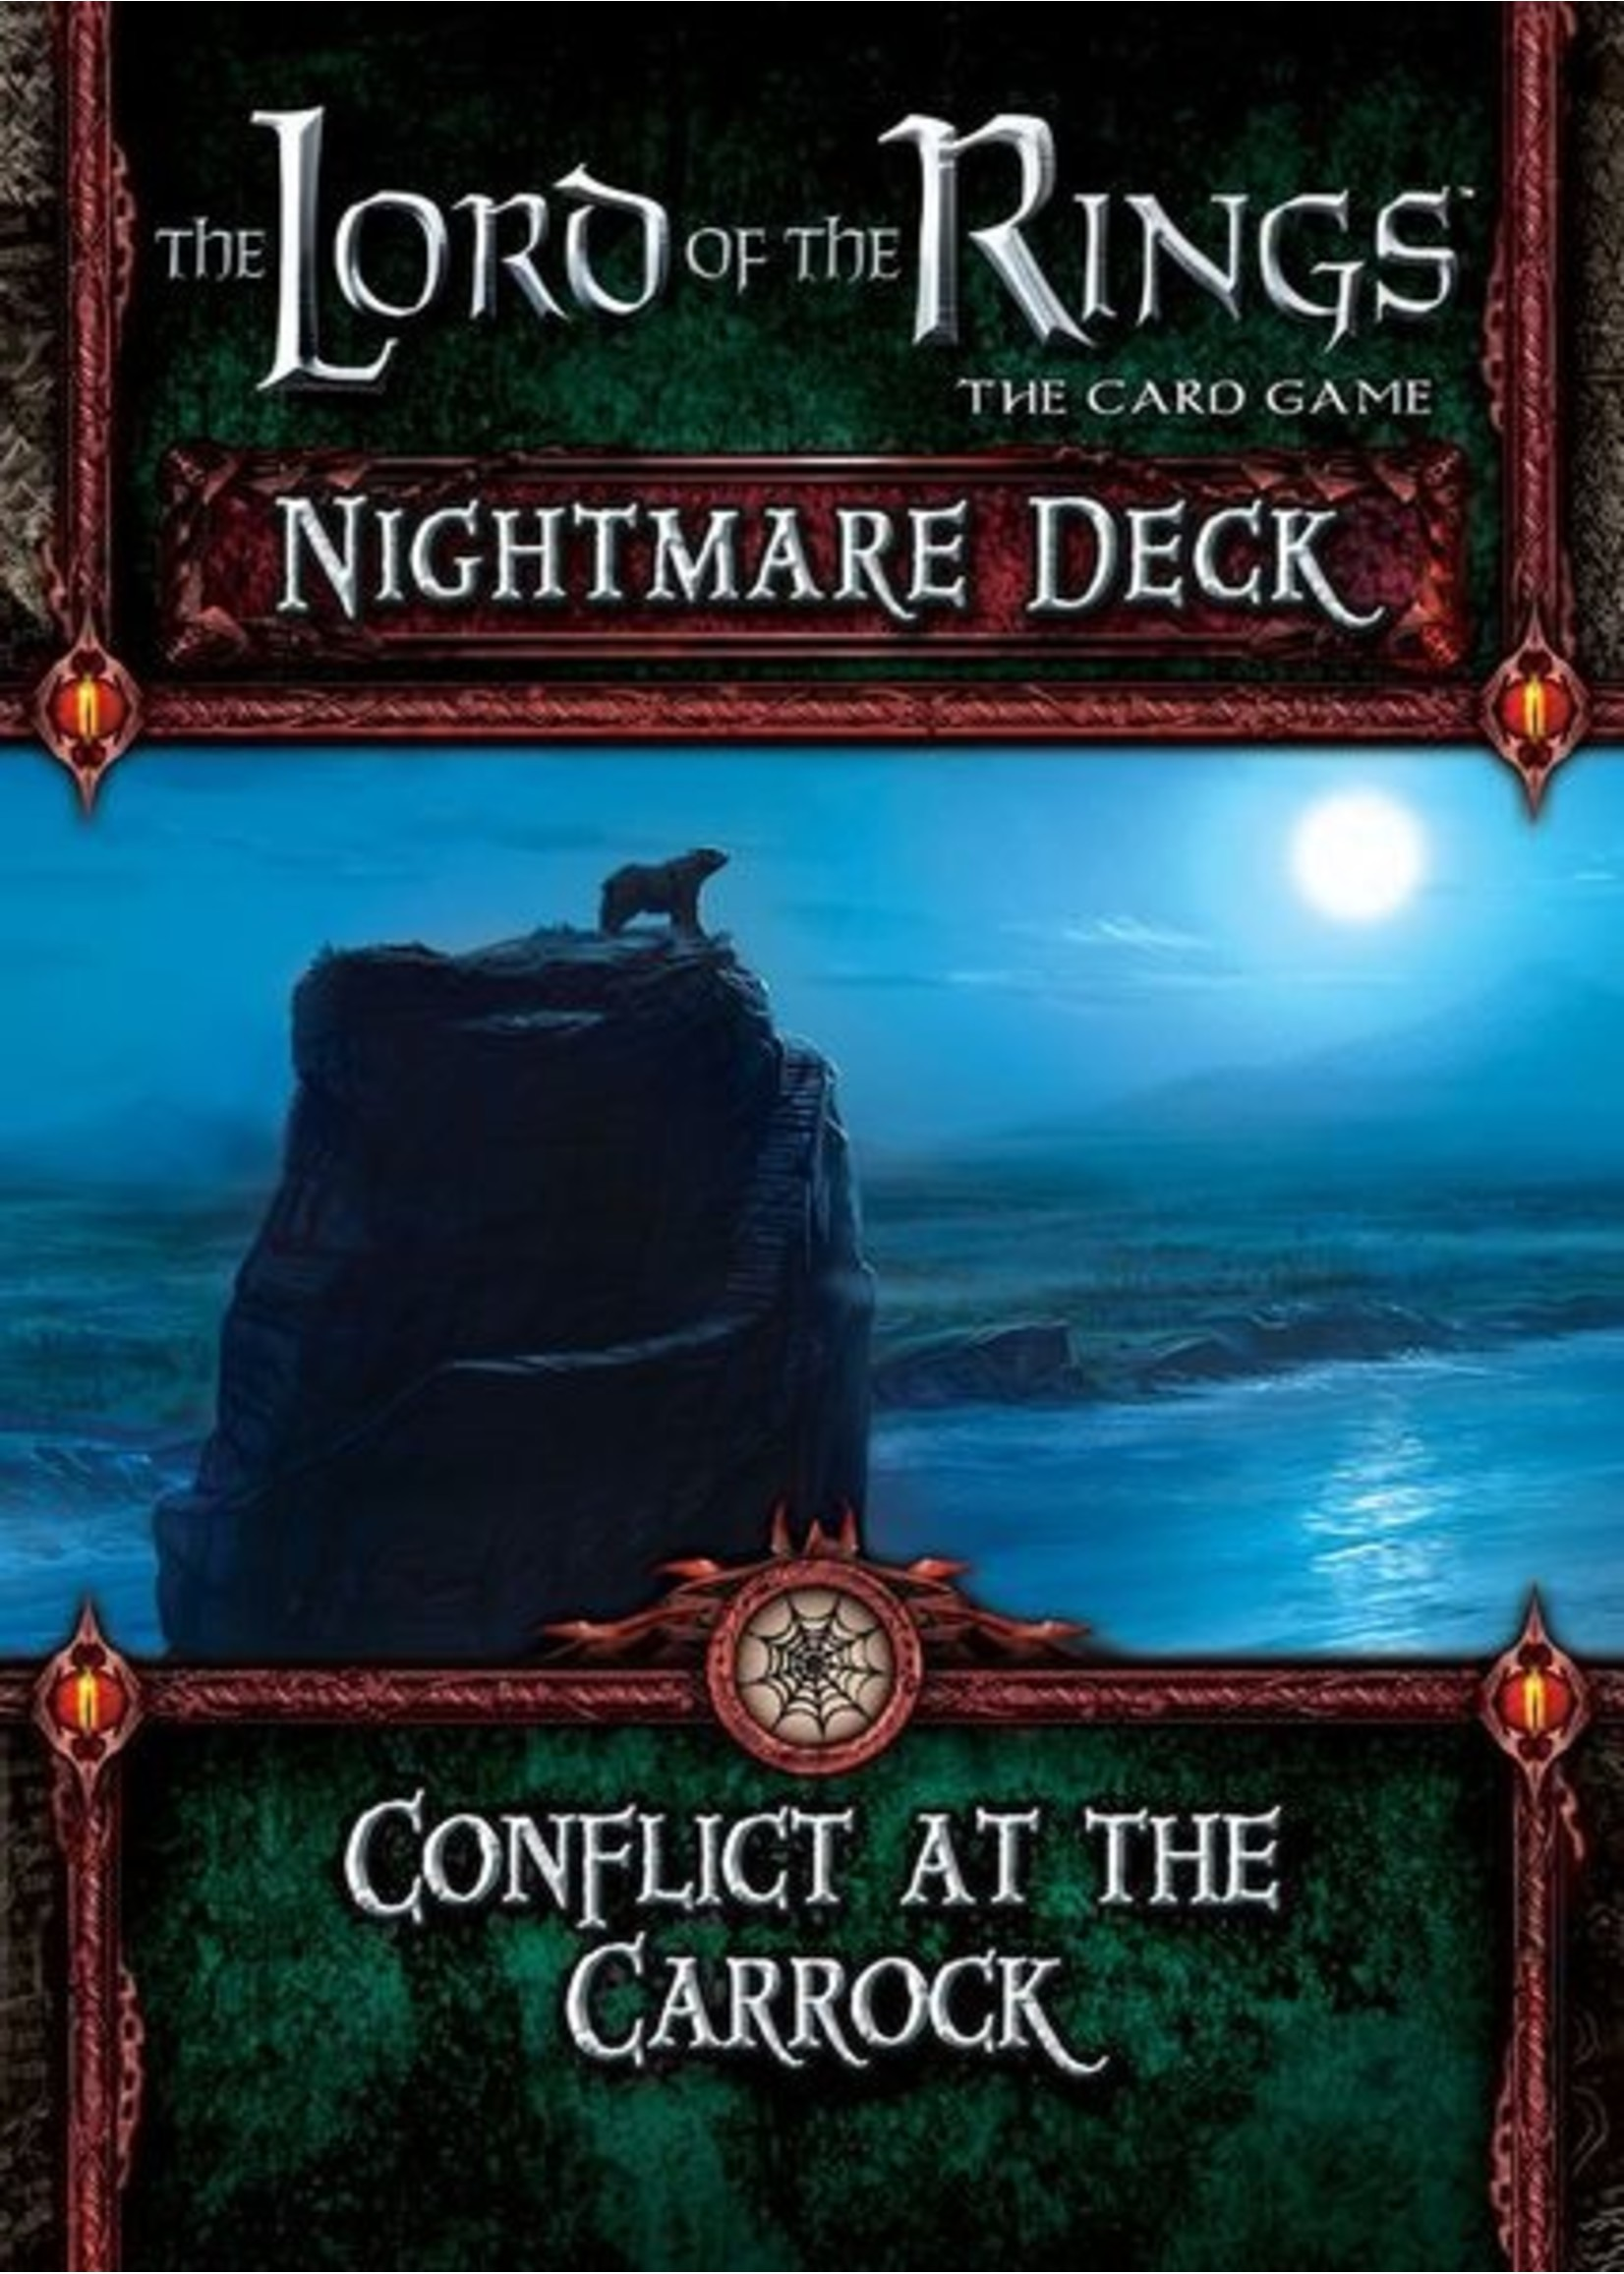 The Lord of the Rings LCG: Conflict at the Carrock Nightmare Deck